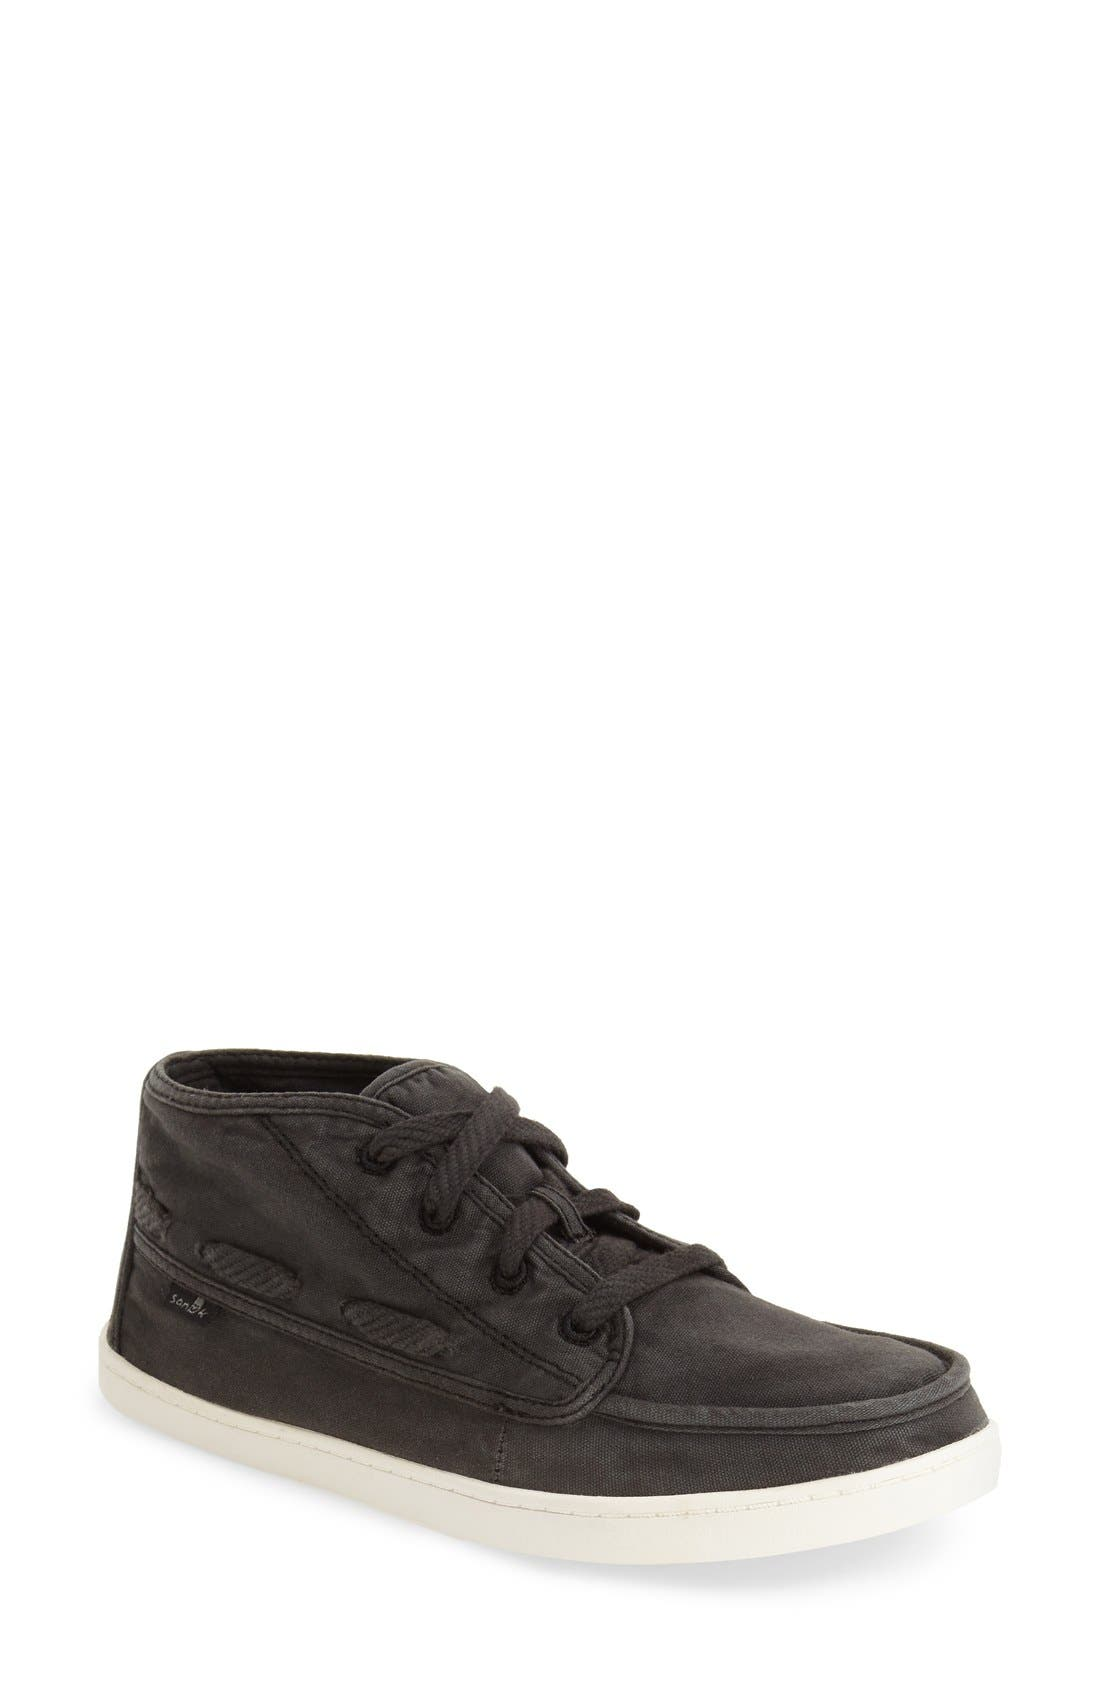 'Vee K Shawn' High Top Sneaker,                             Main thumbnail 1, color,                             Washed Black